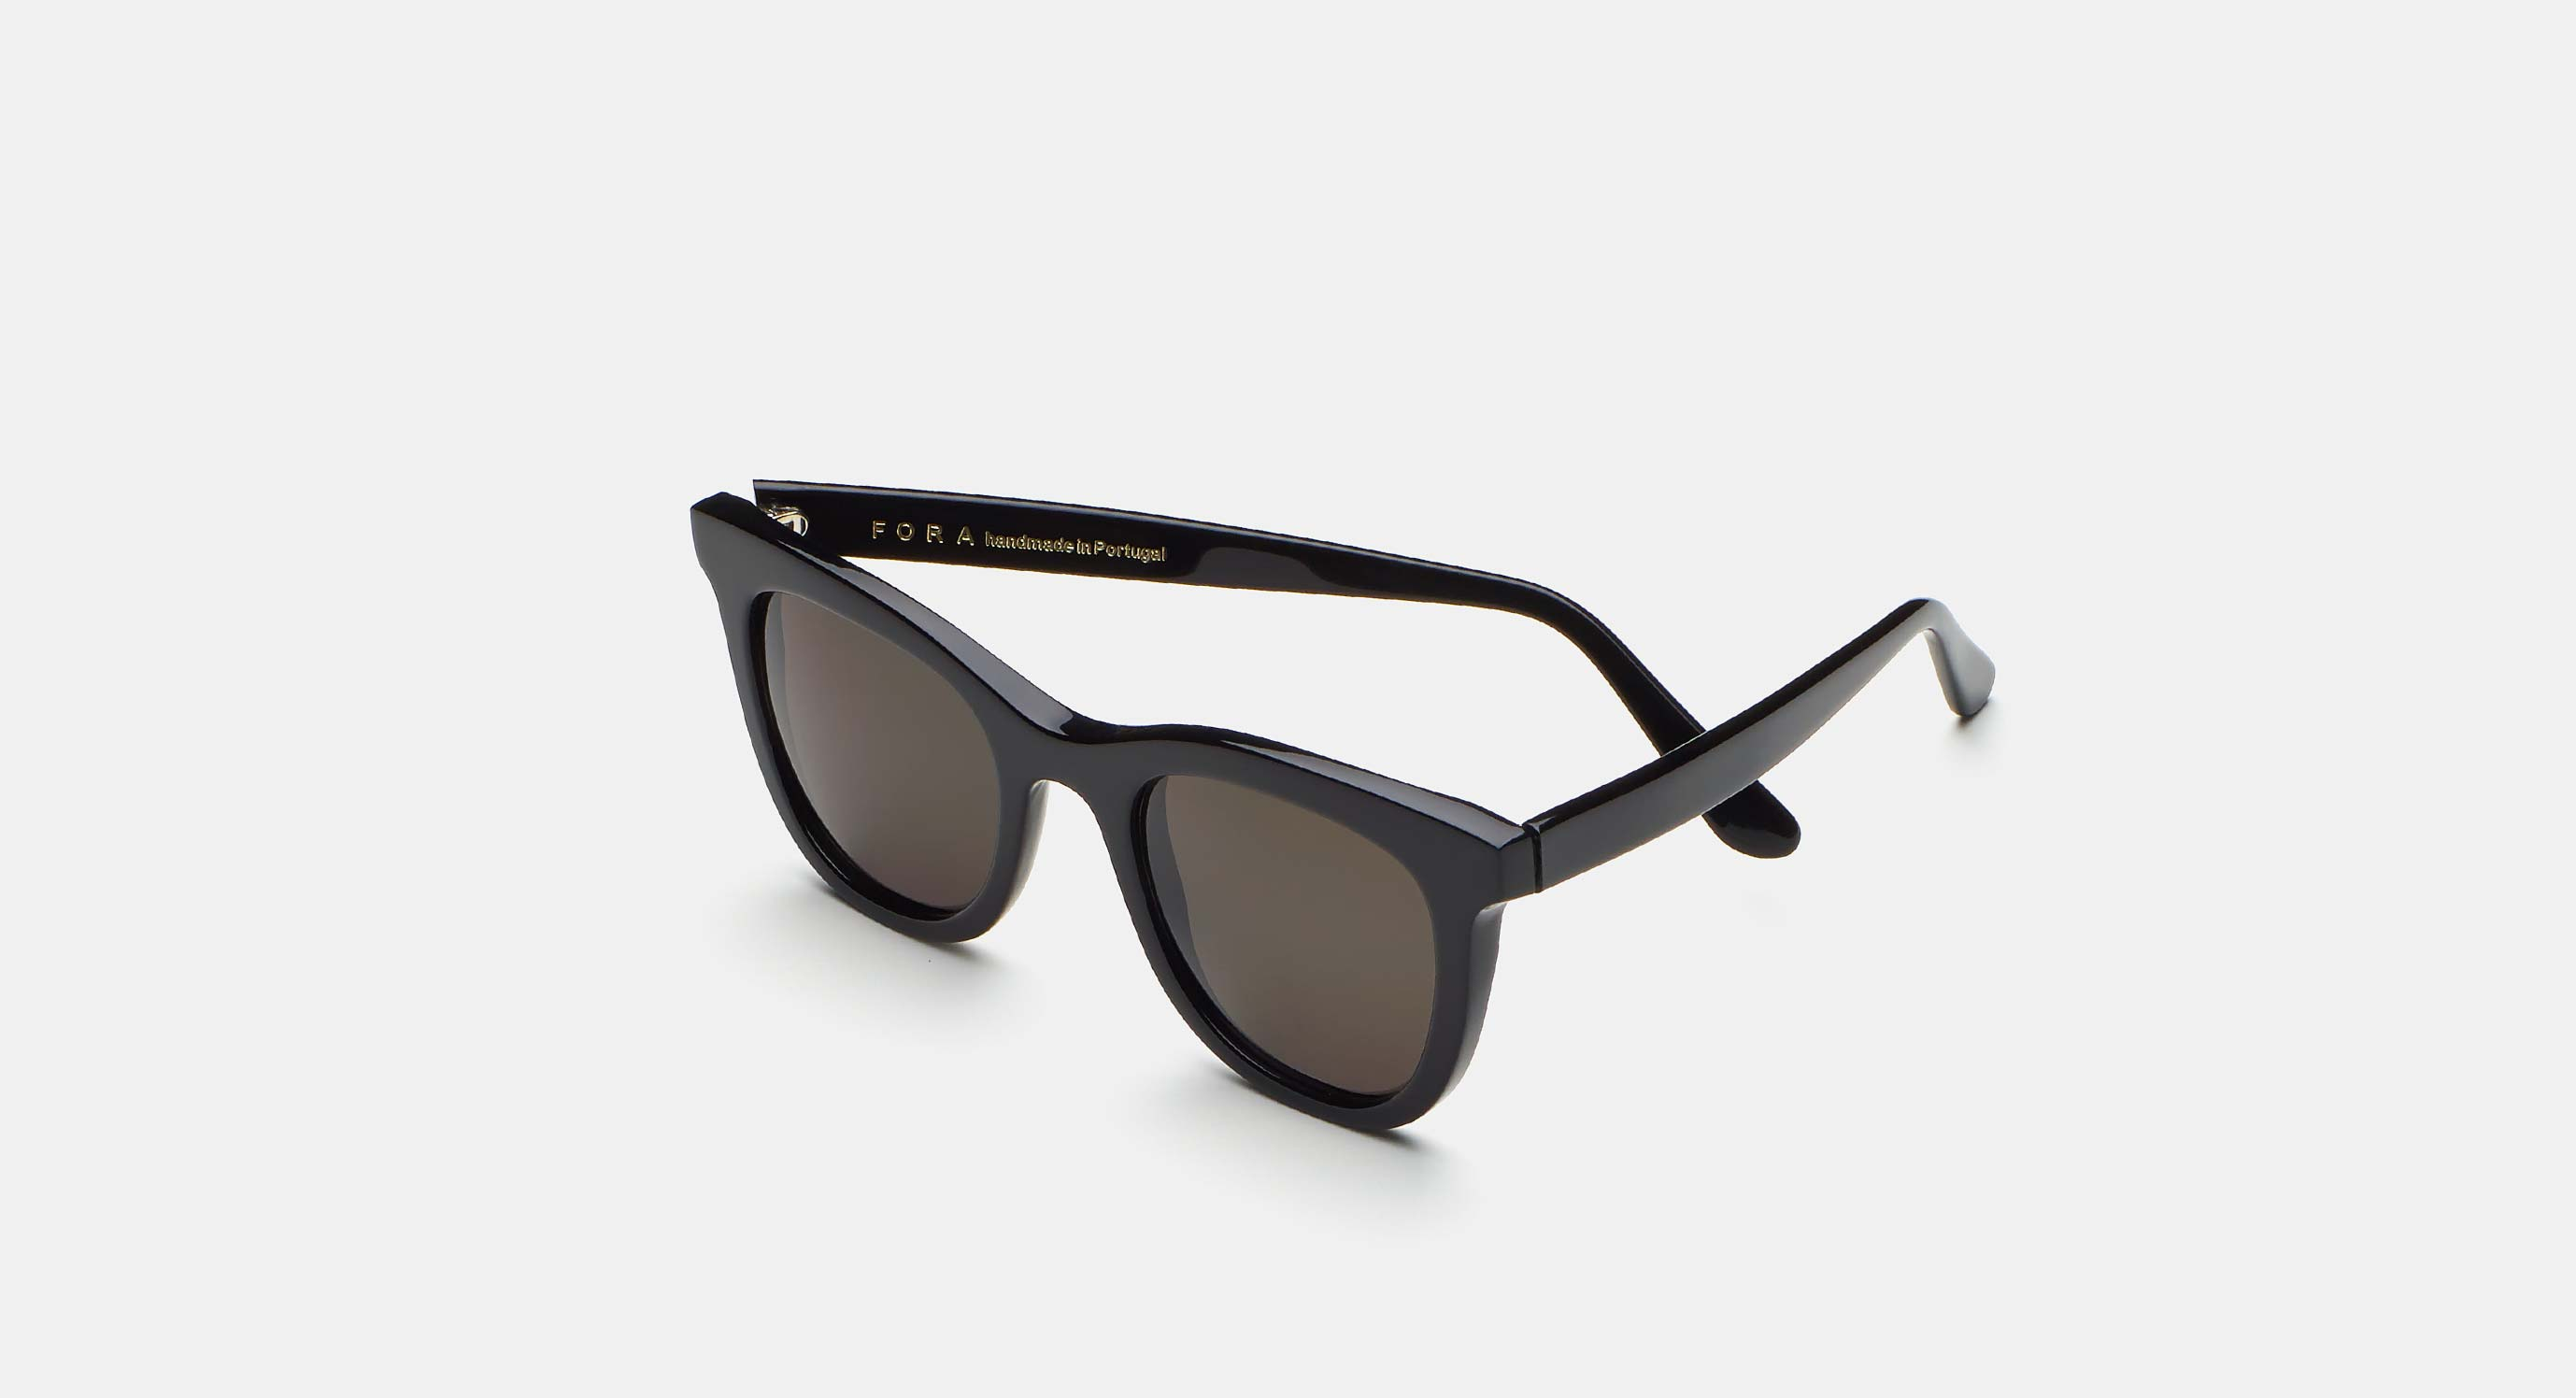 461ece69be77 Everything You Need To Know About FORA Sunglasses | OPUMO